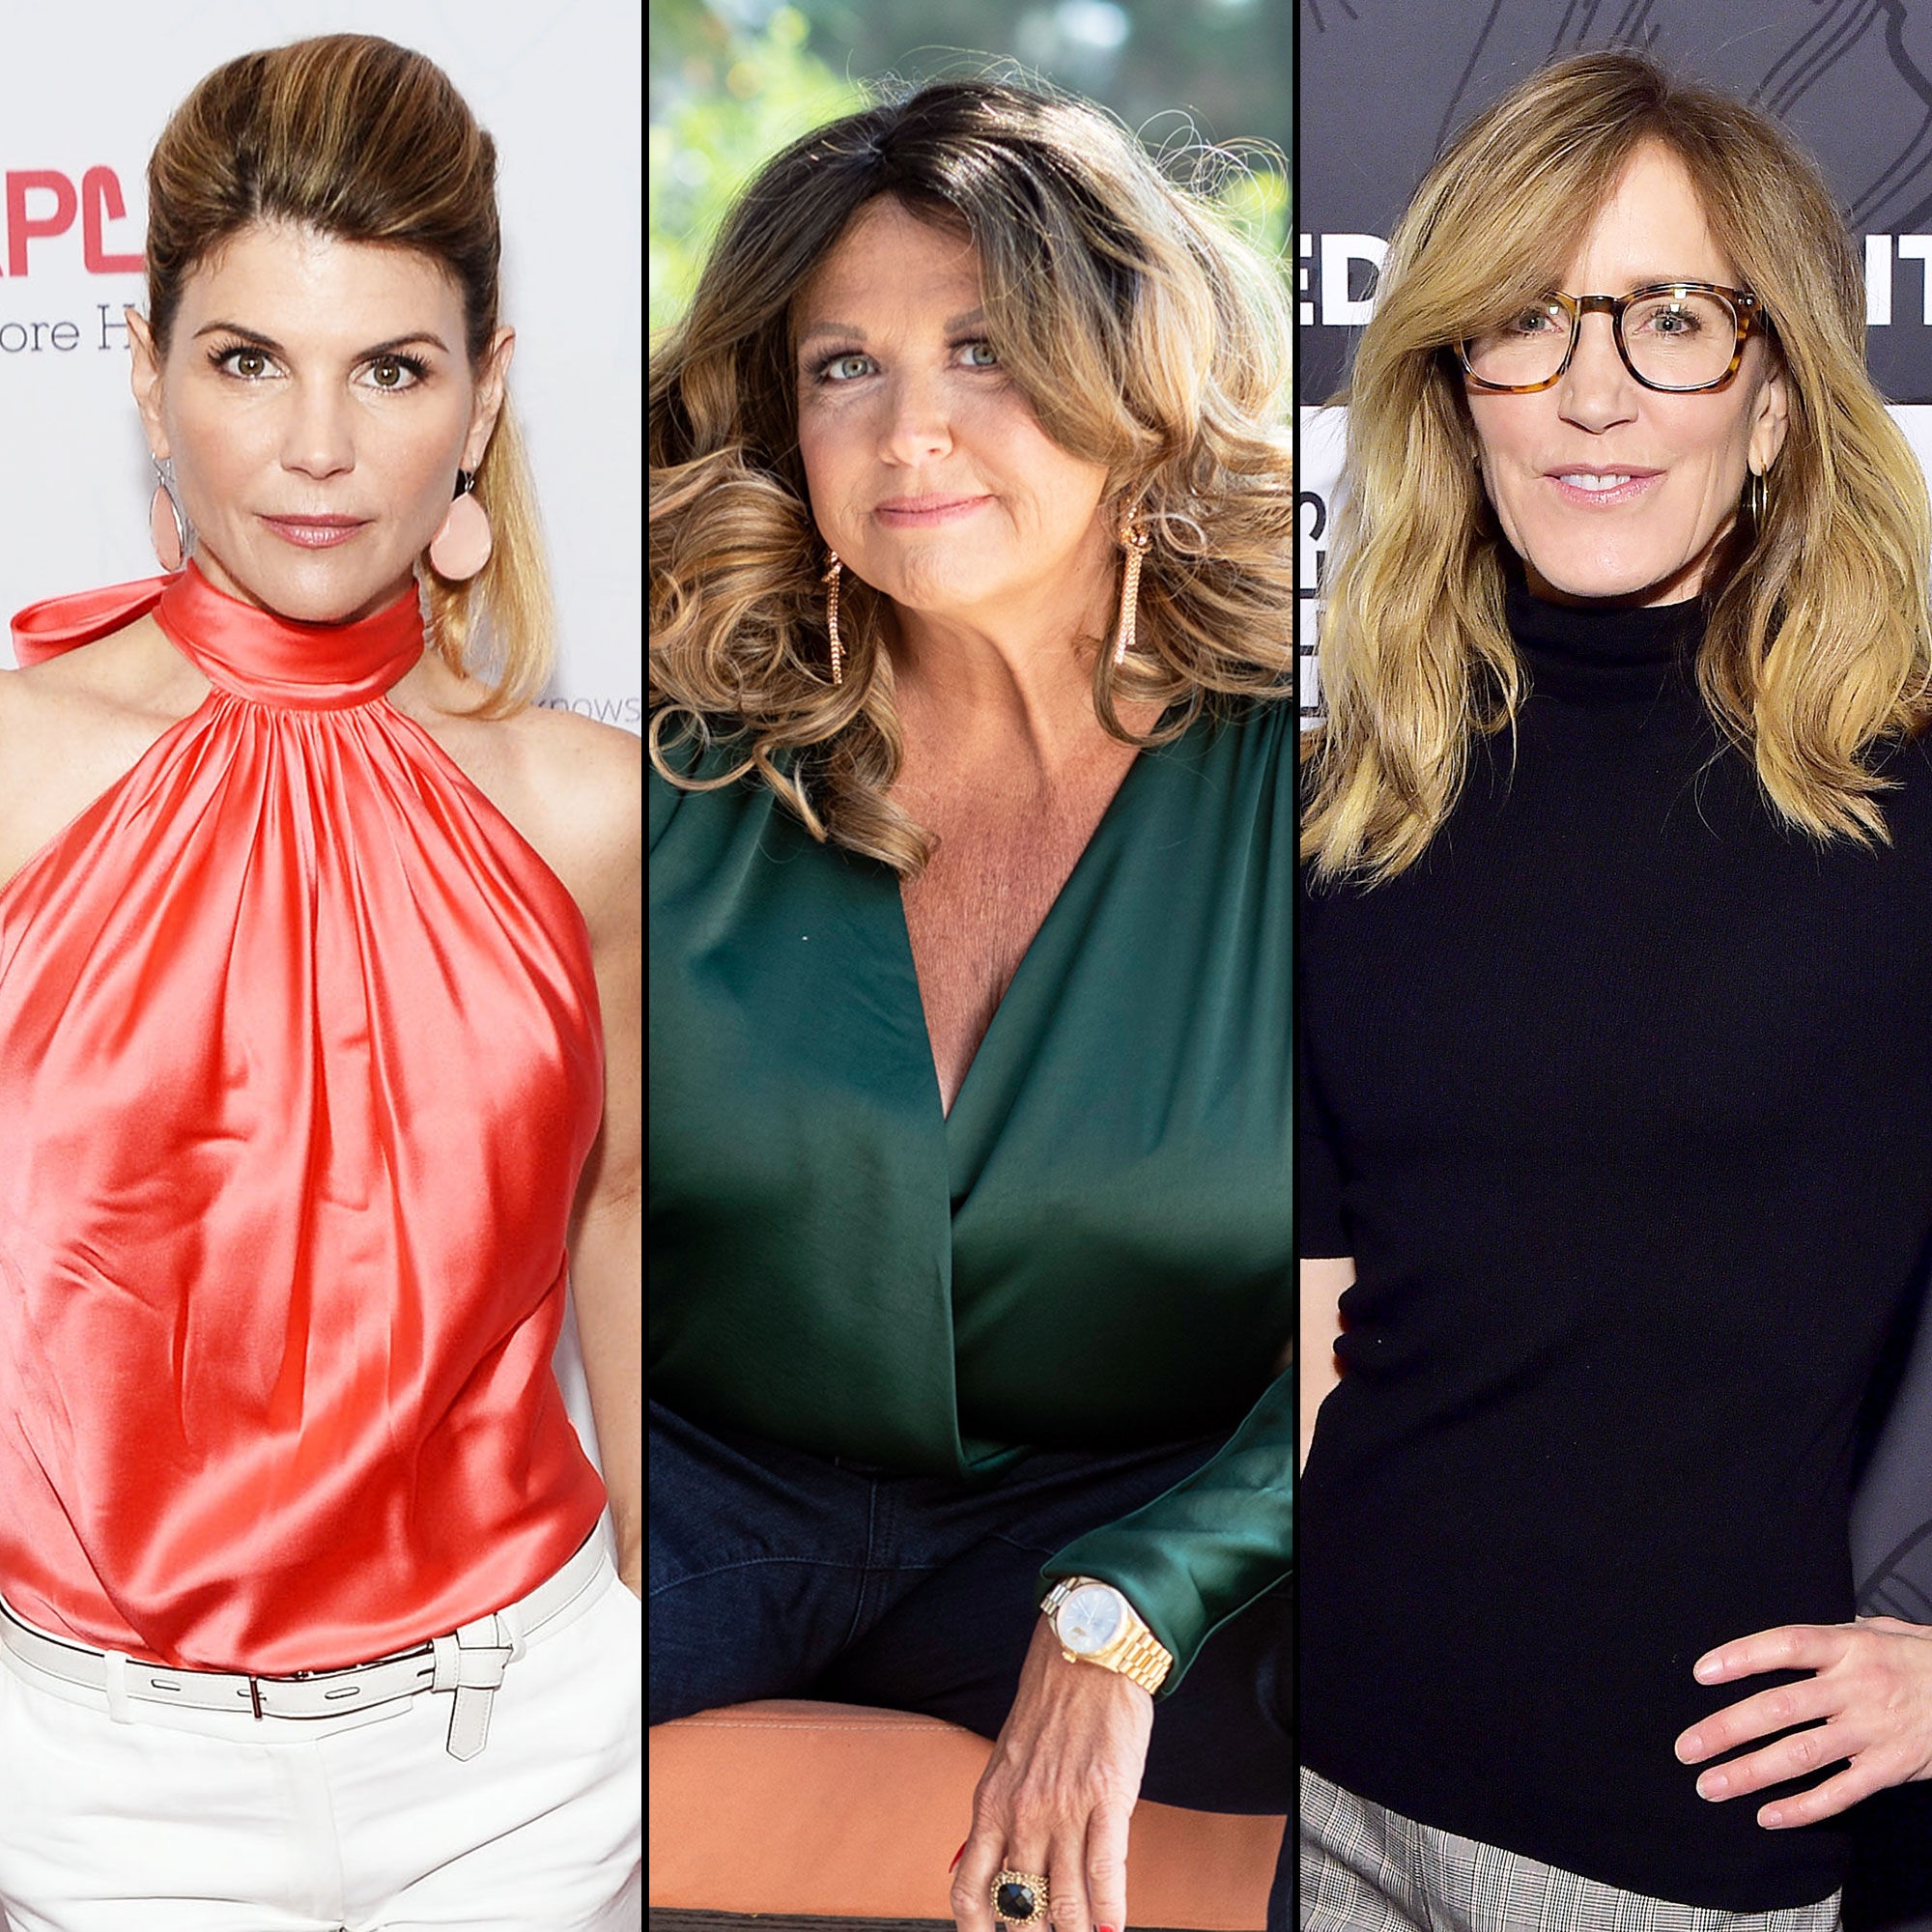 Abby Lee Miller Advice Lori Loughlin Felicity Huffman College Admissions Scandal - Lori Loughlin, Abby Lee Miller and Felicity Huffman.